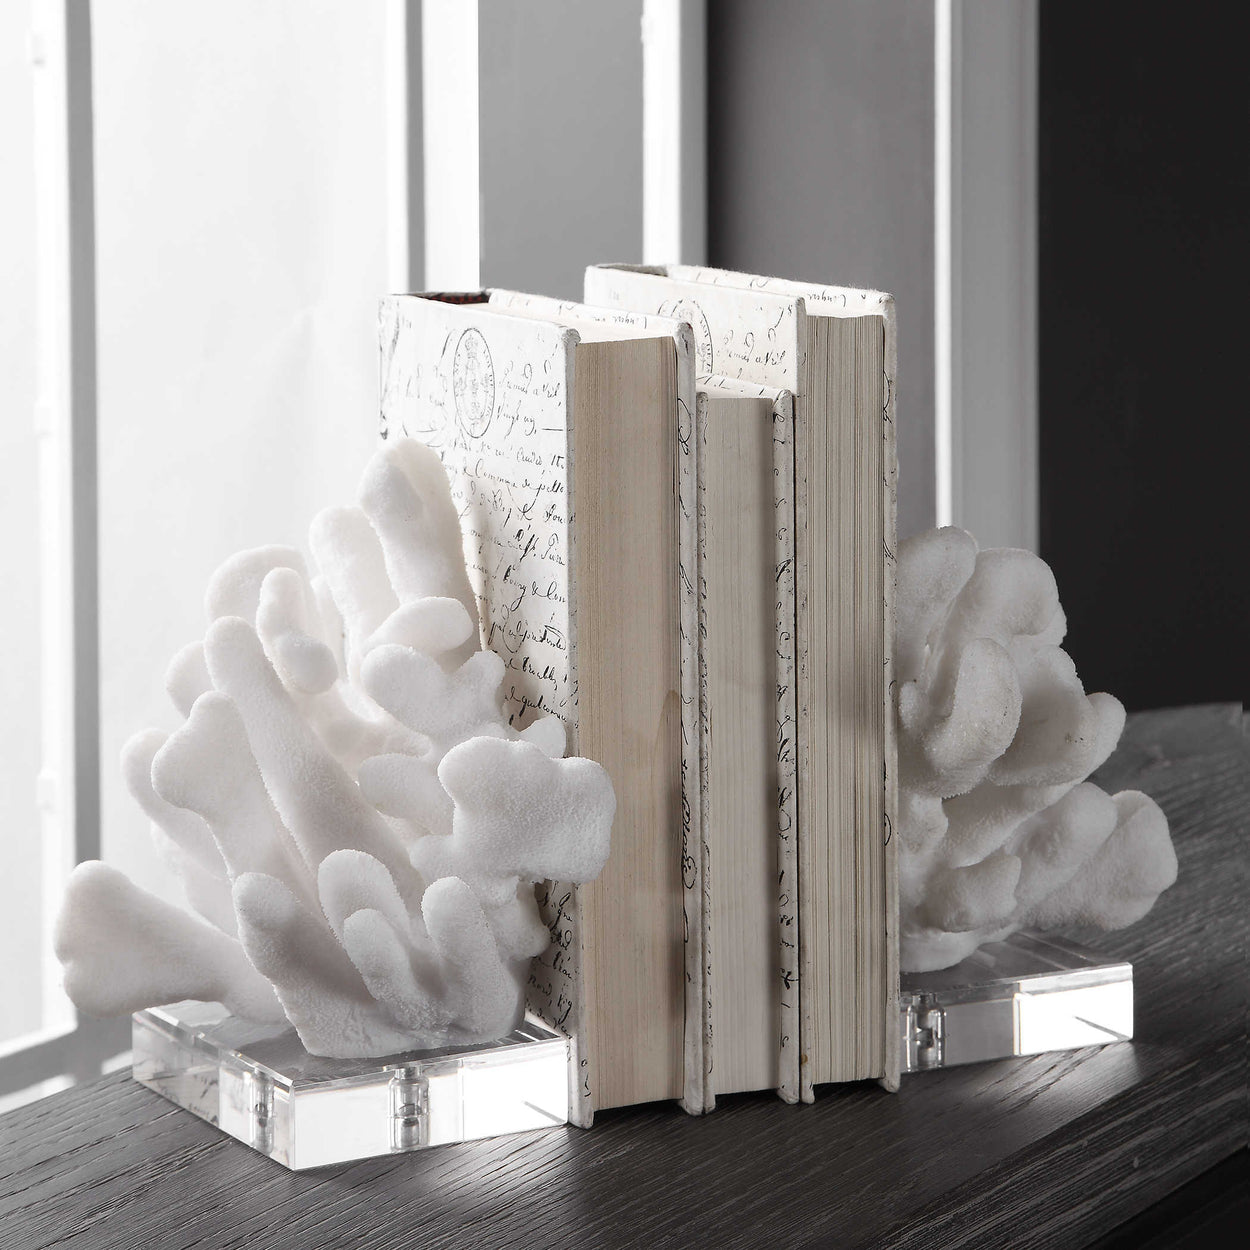 Set of two bookends featuring textured faux white coral on crystal bases. Sizes: S-5x9x8, L-6x9x8